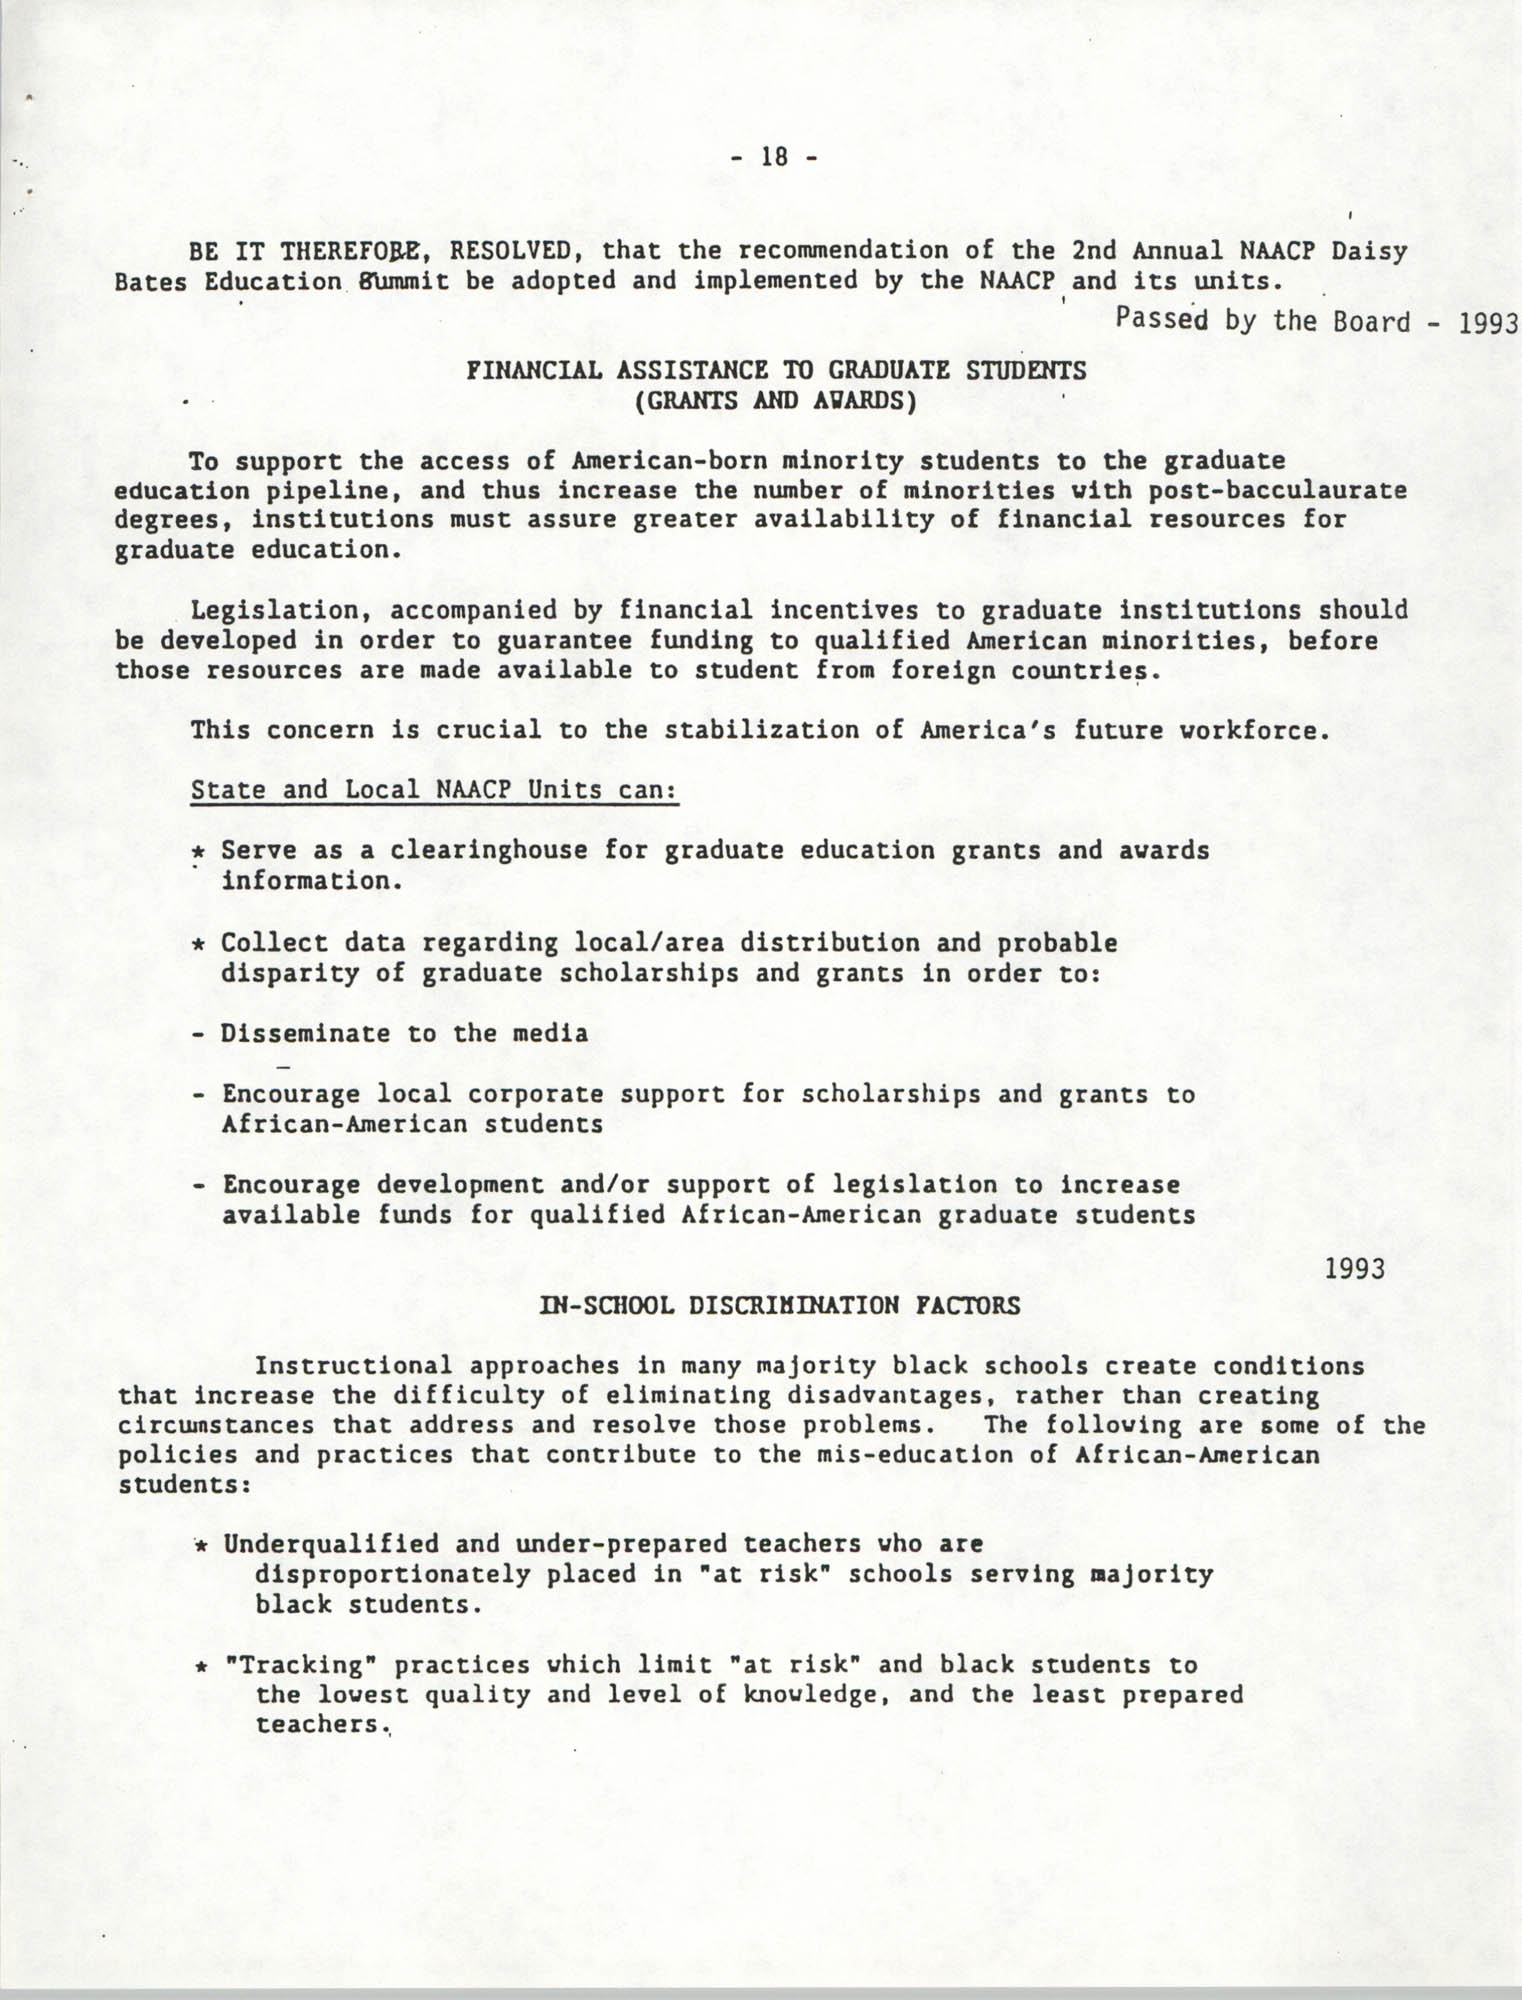 Education Resolutions 1993, Page 18